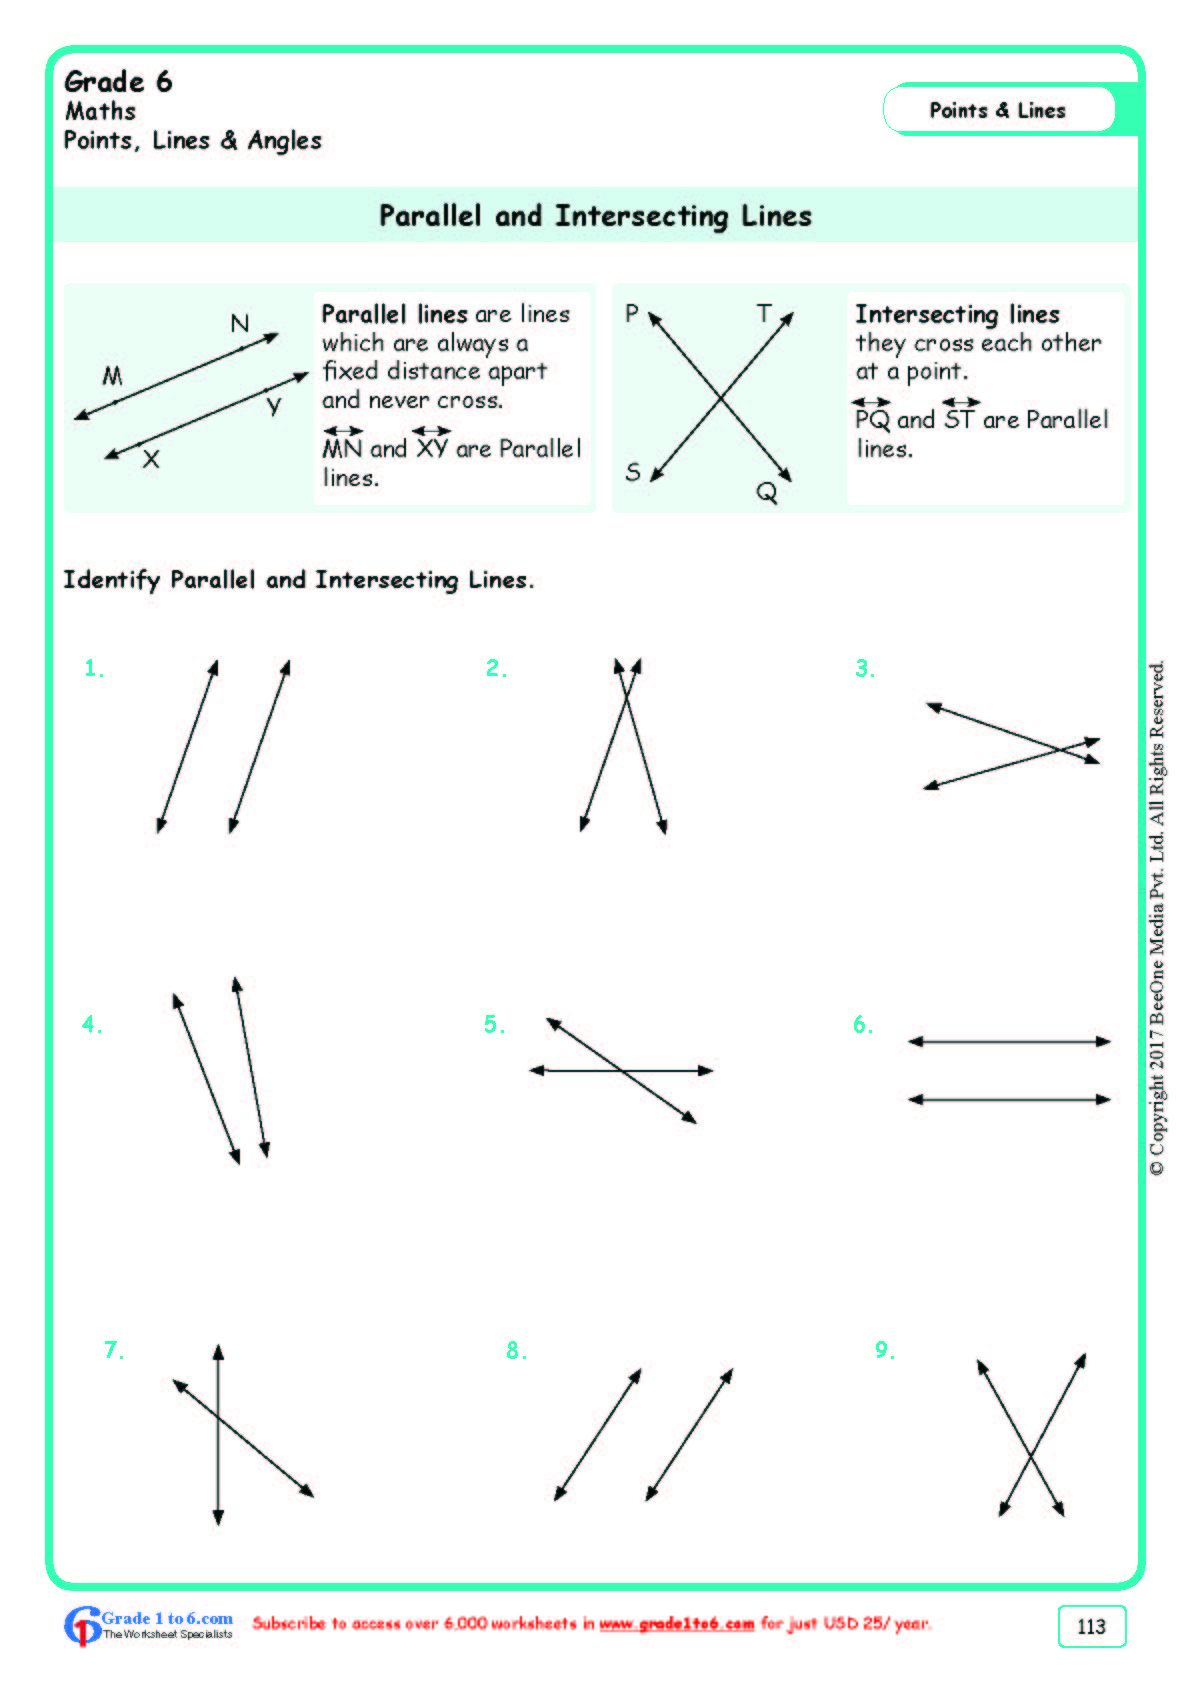 Grade 6 Class Six Parallel Lines Worksheets Ade1to6